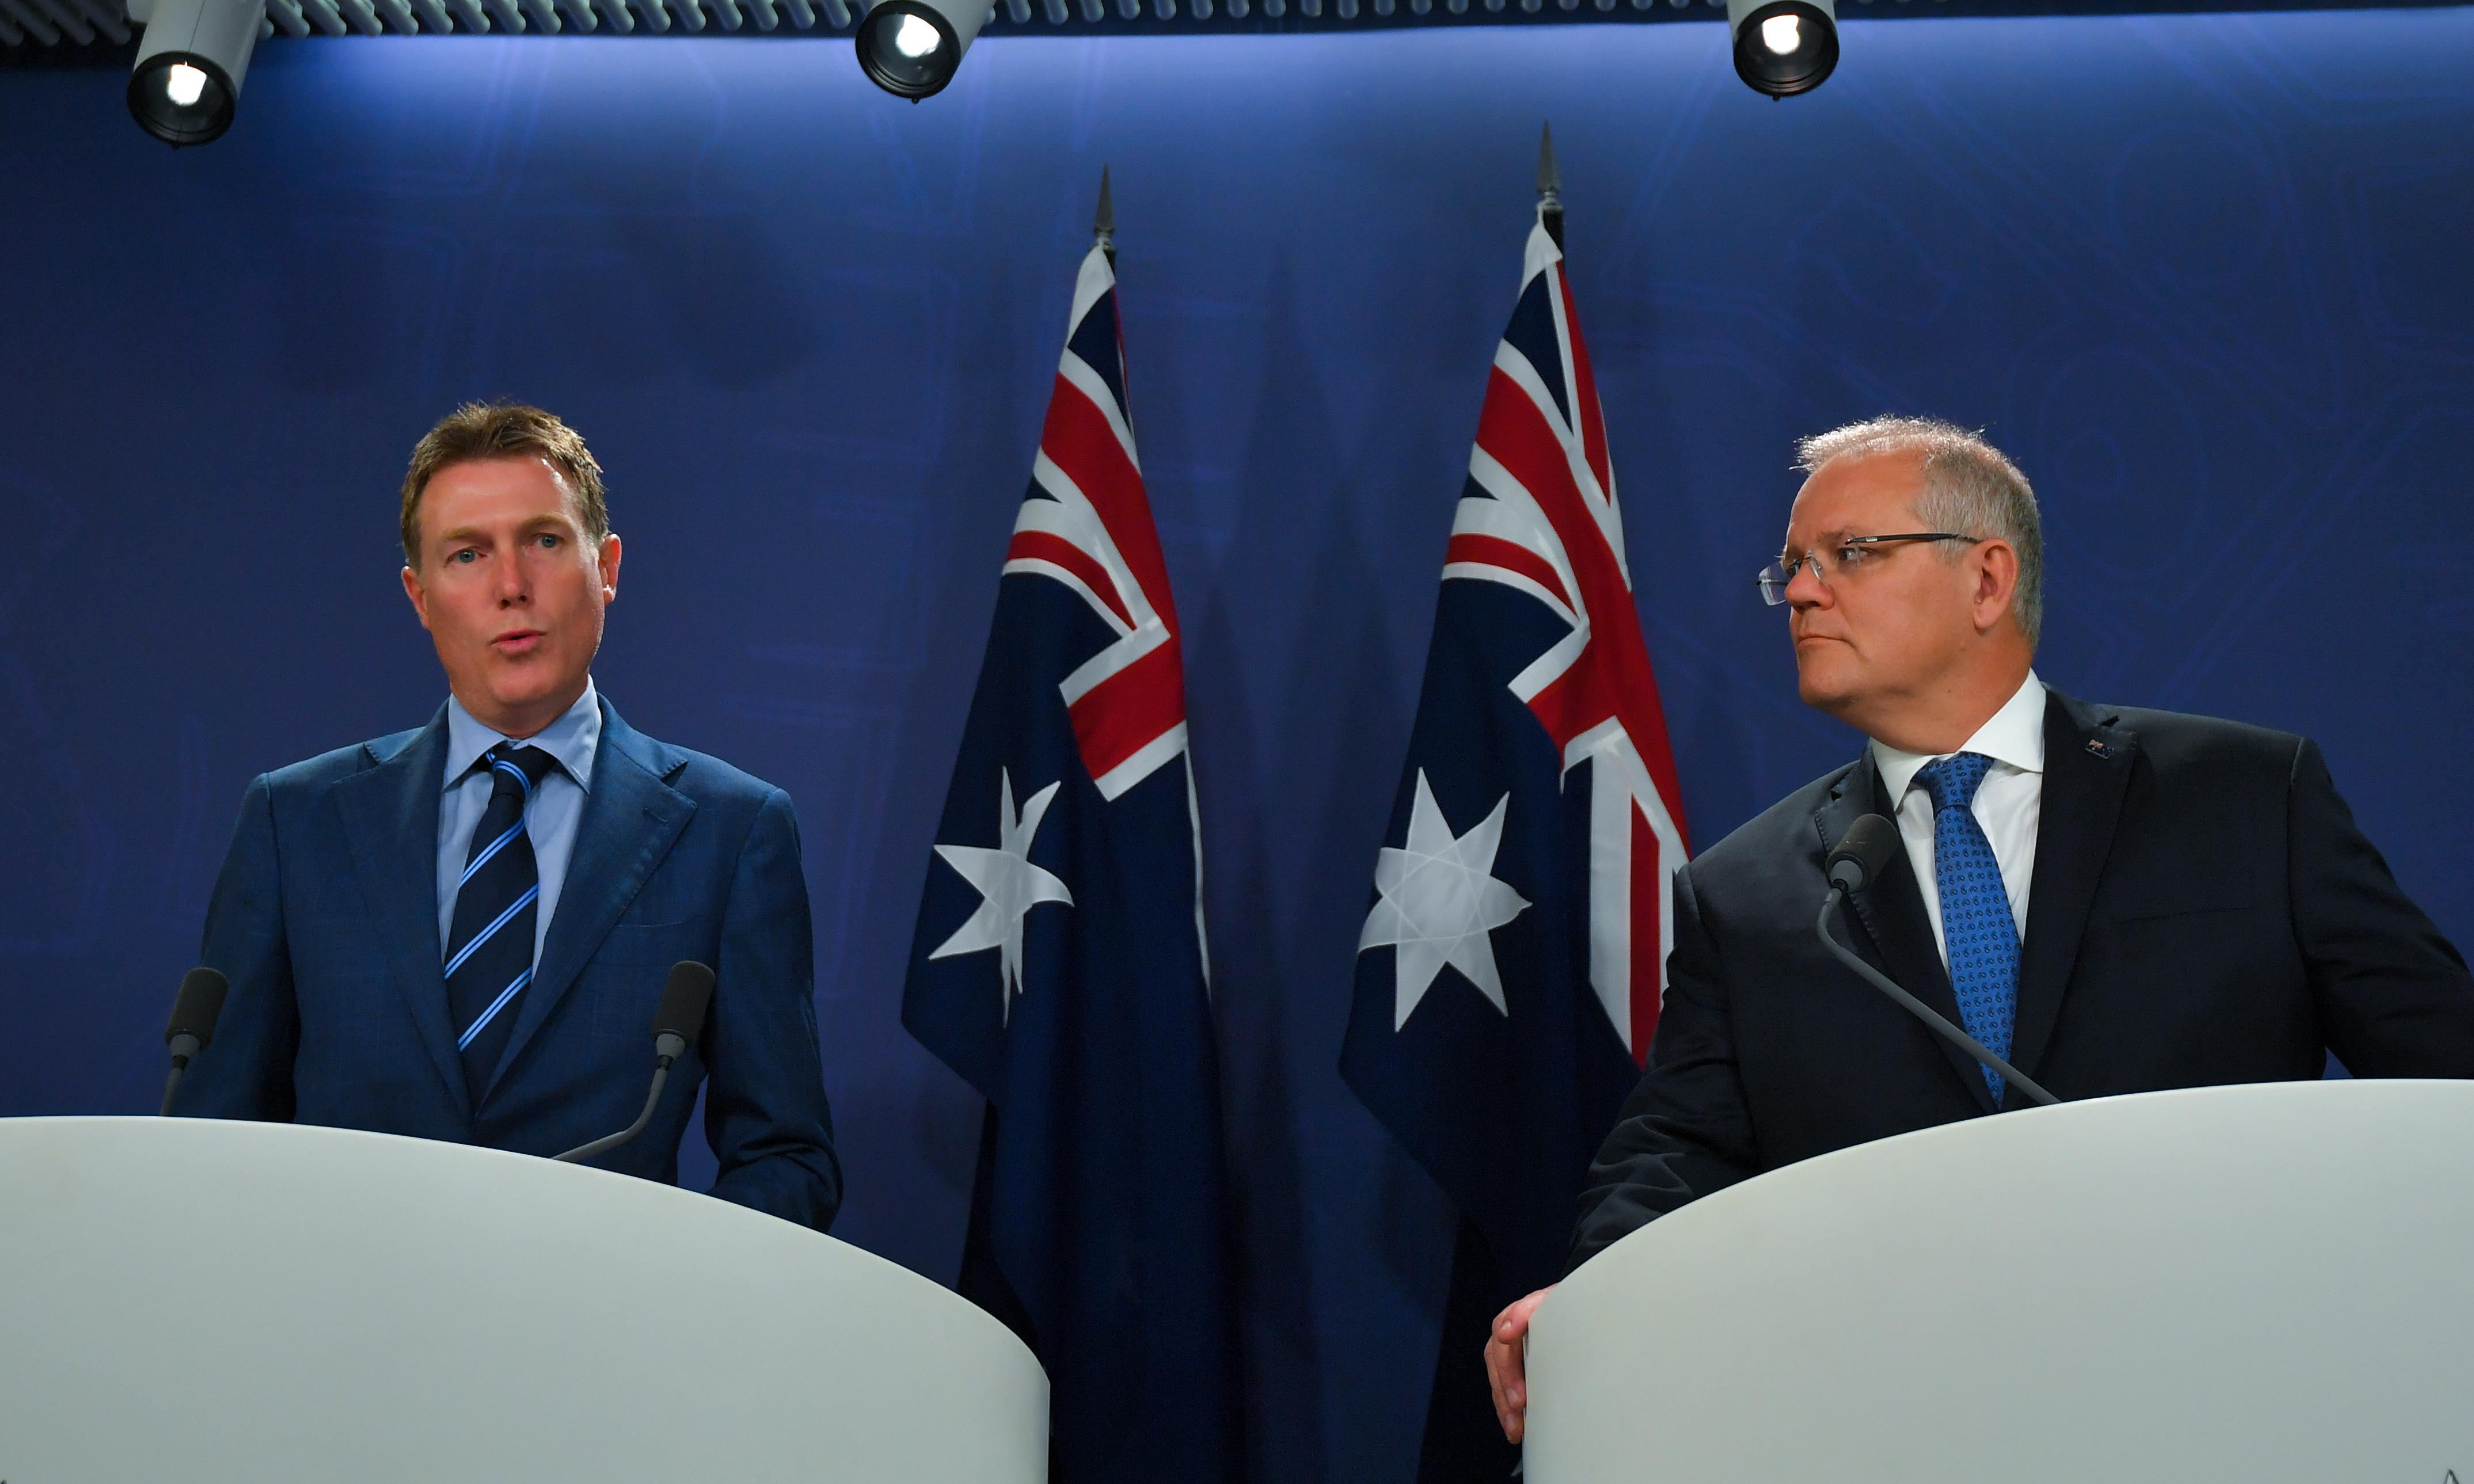 Scott Morrison and the Coalition are fiddling as Australia burns